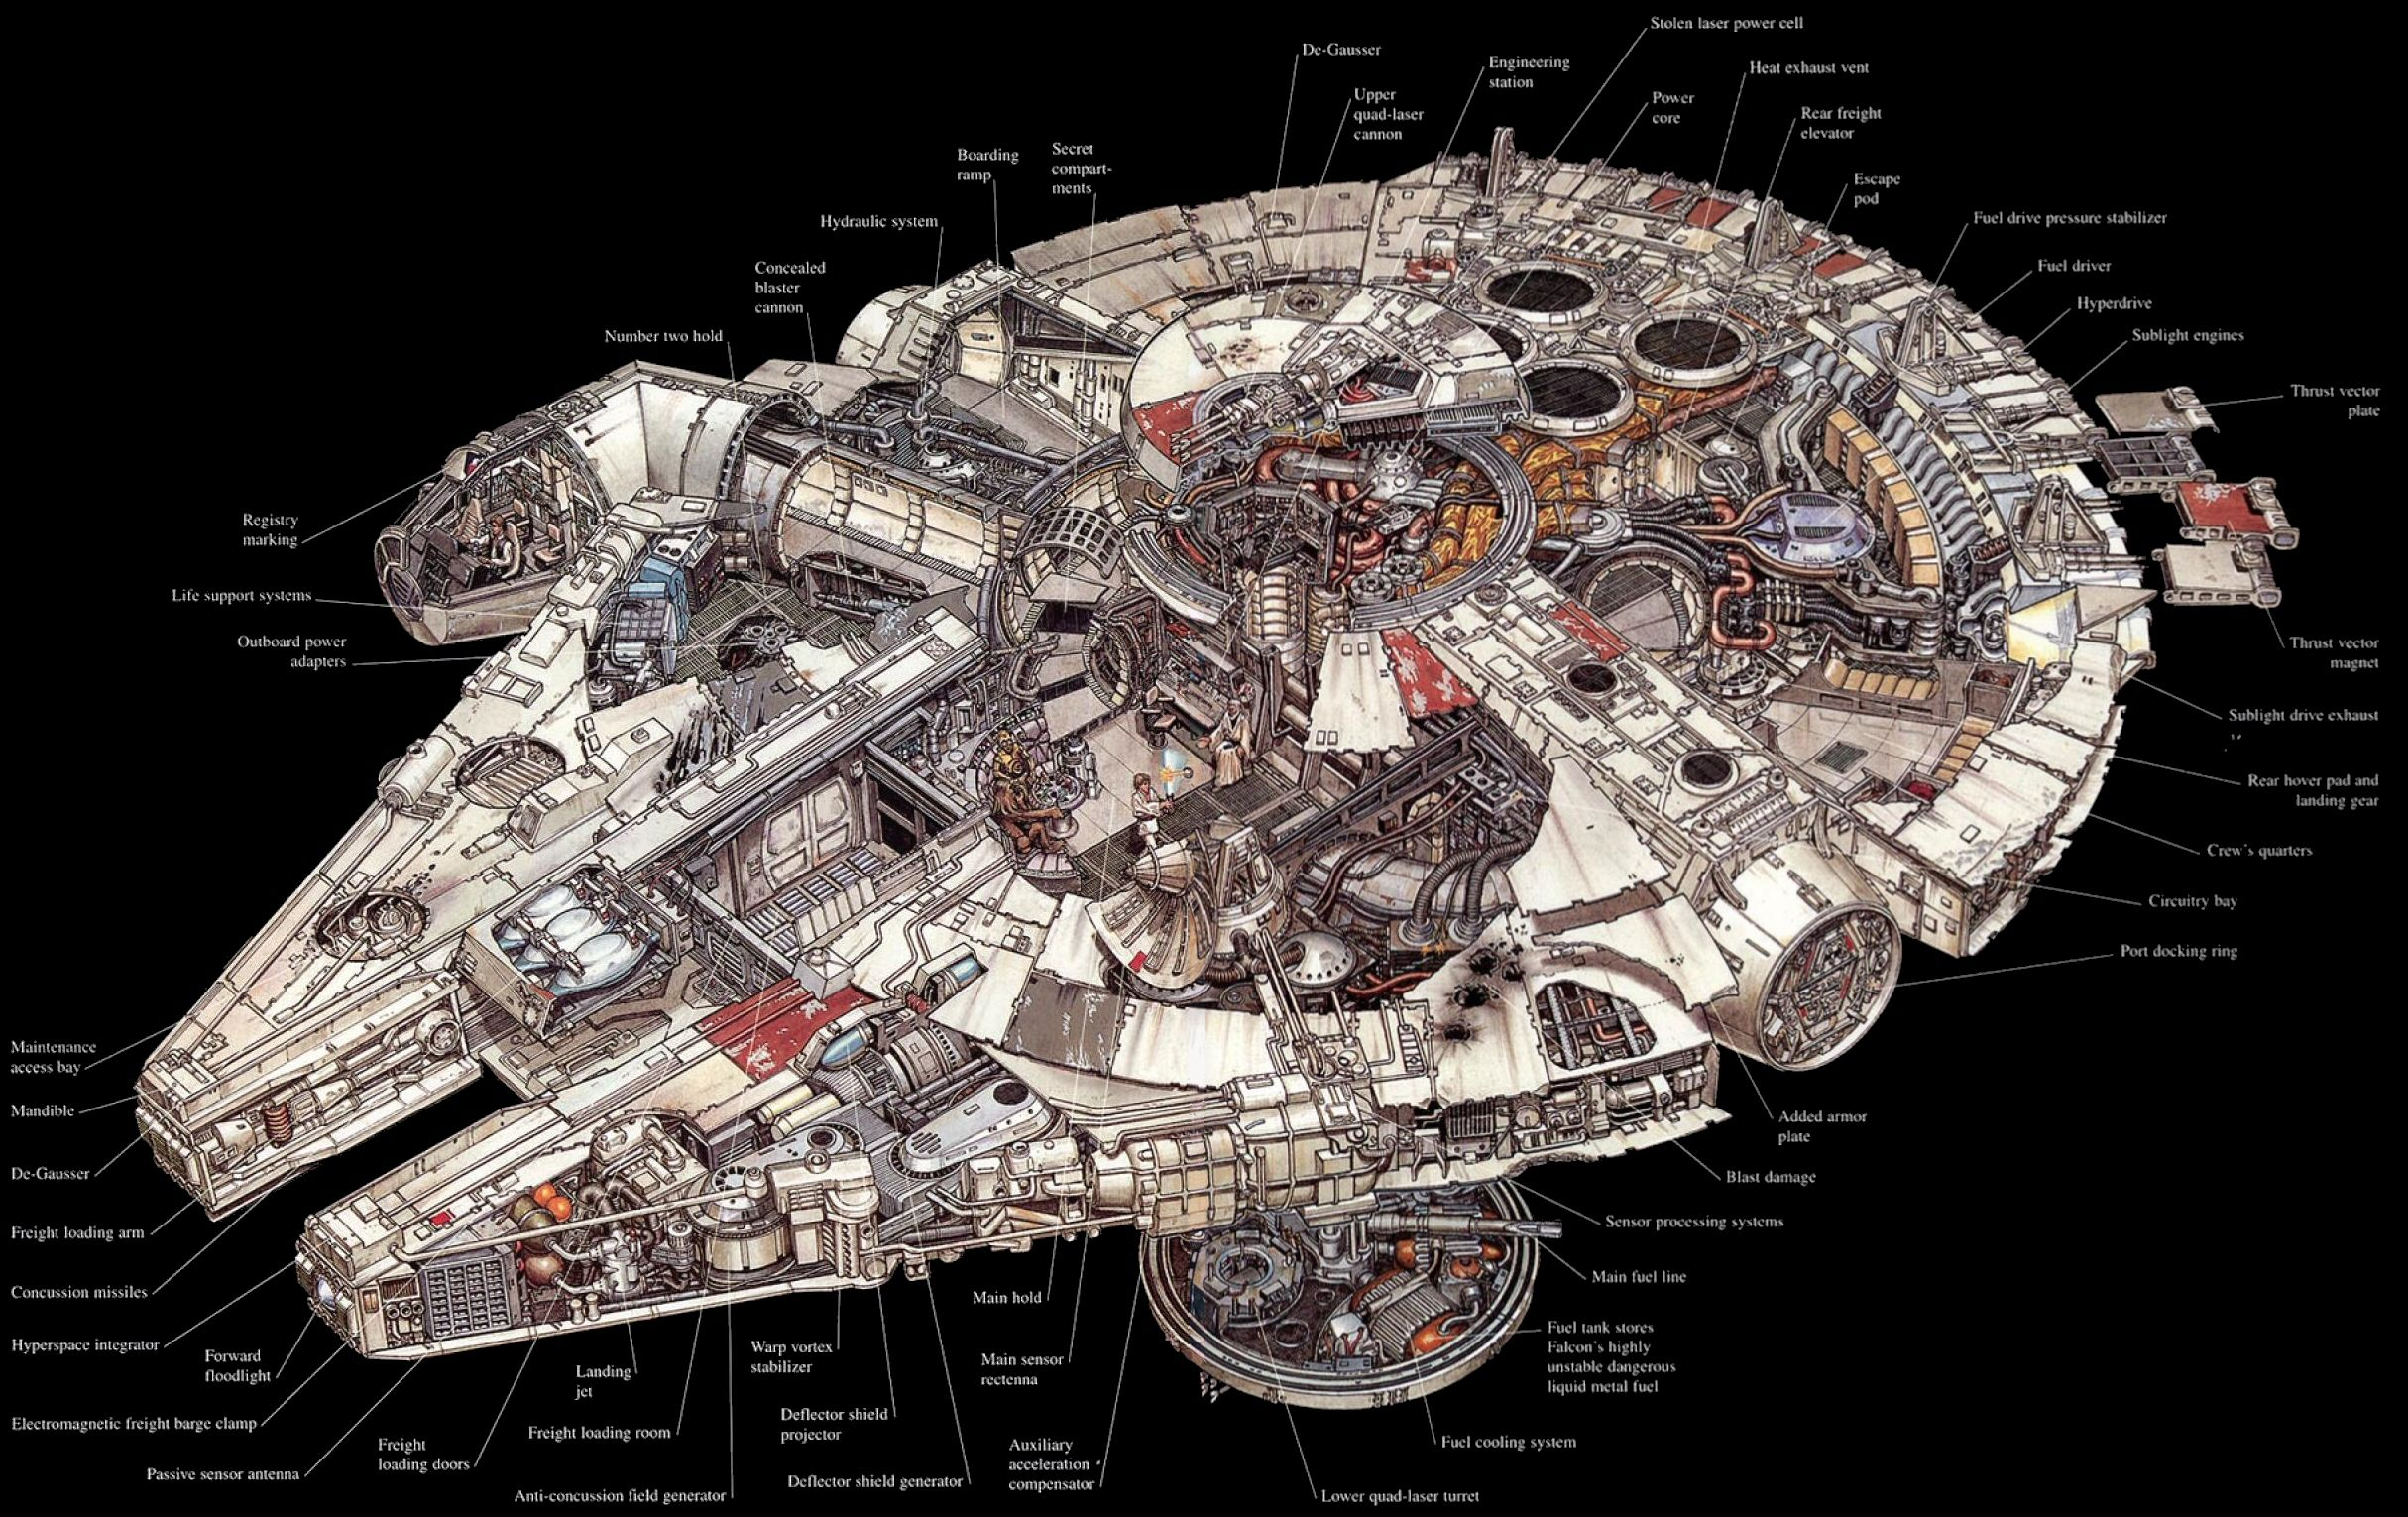 ... View topic - Roy's Build The Millennium Falcon-Part 1 (Issues 1 to 25